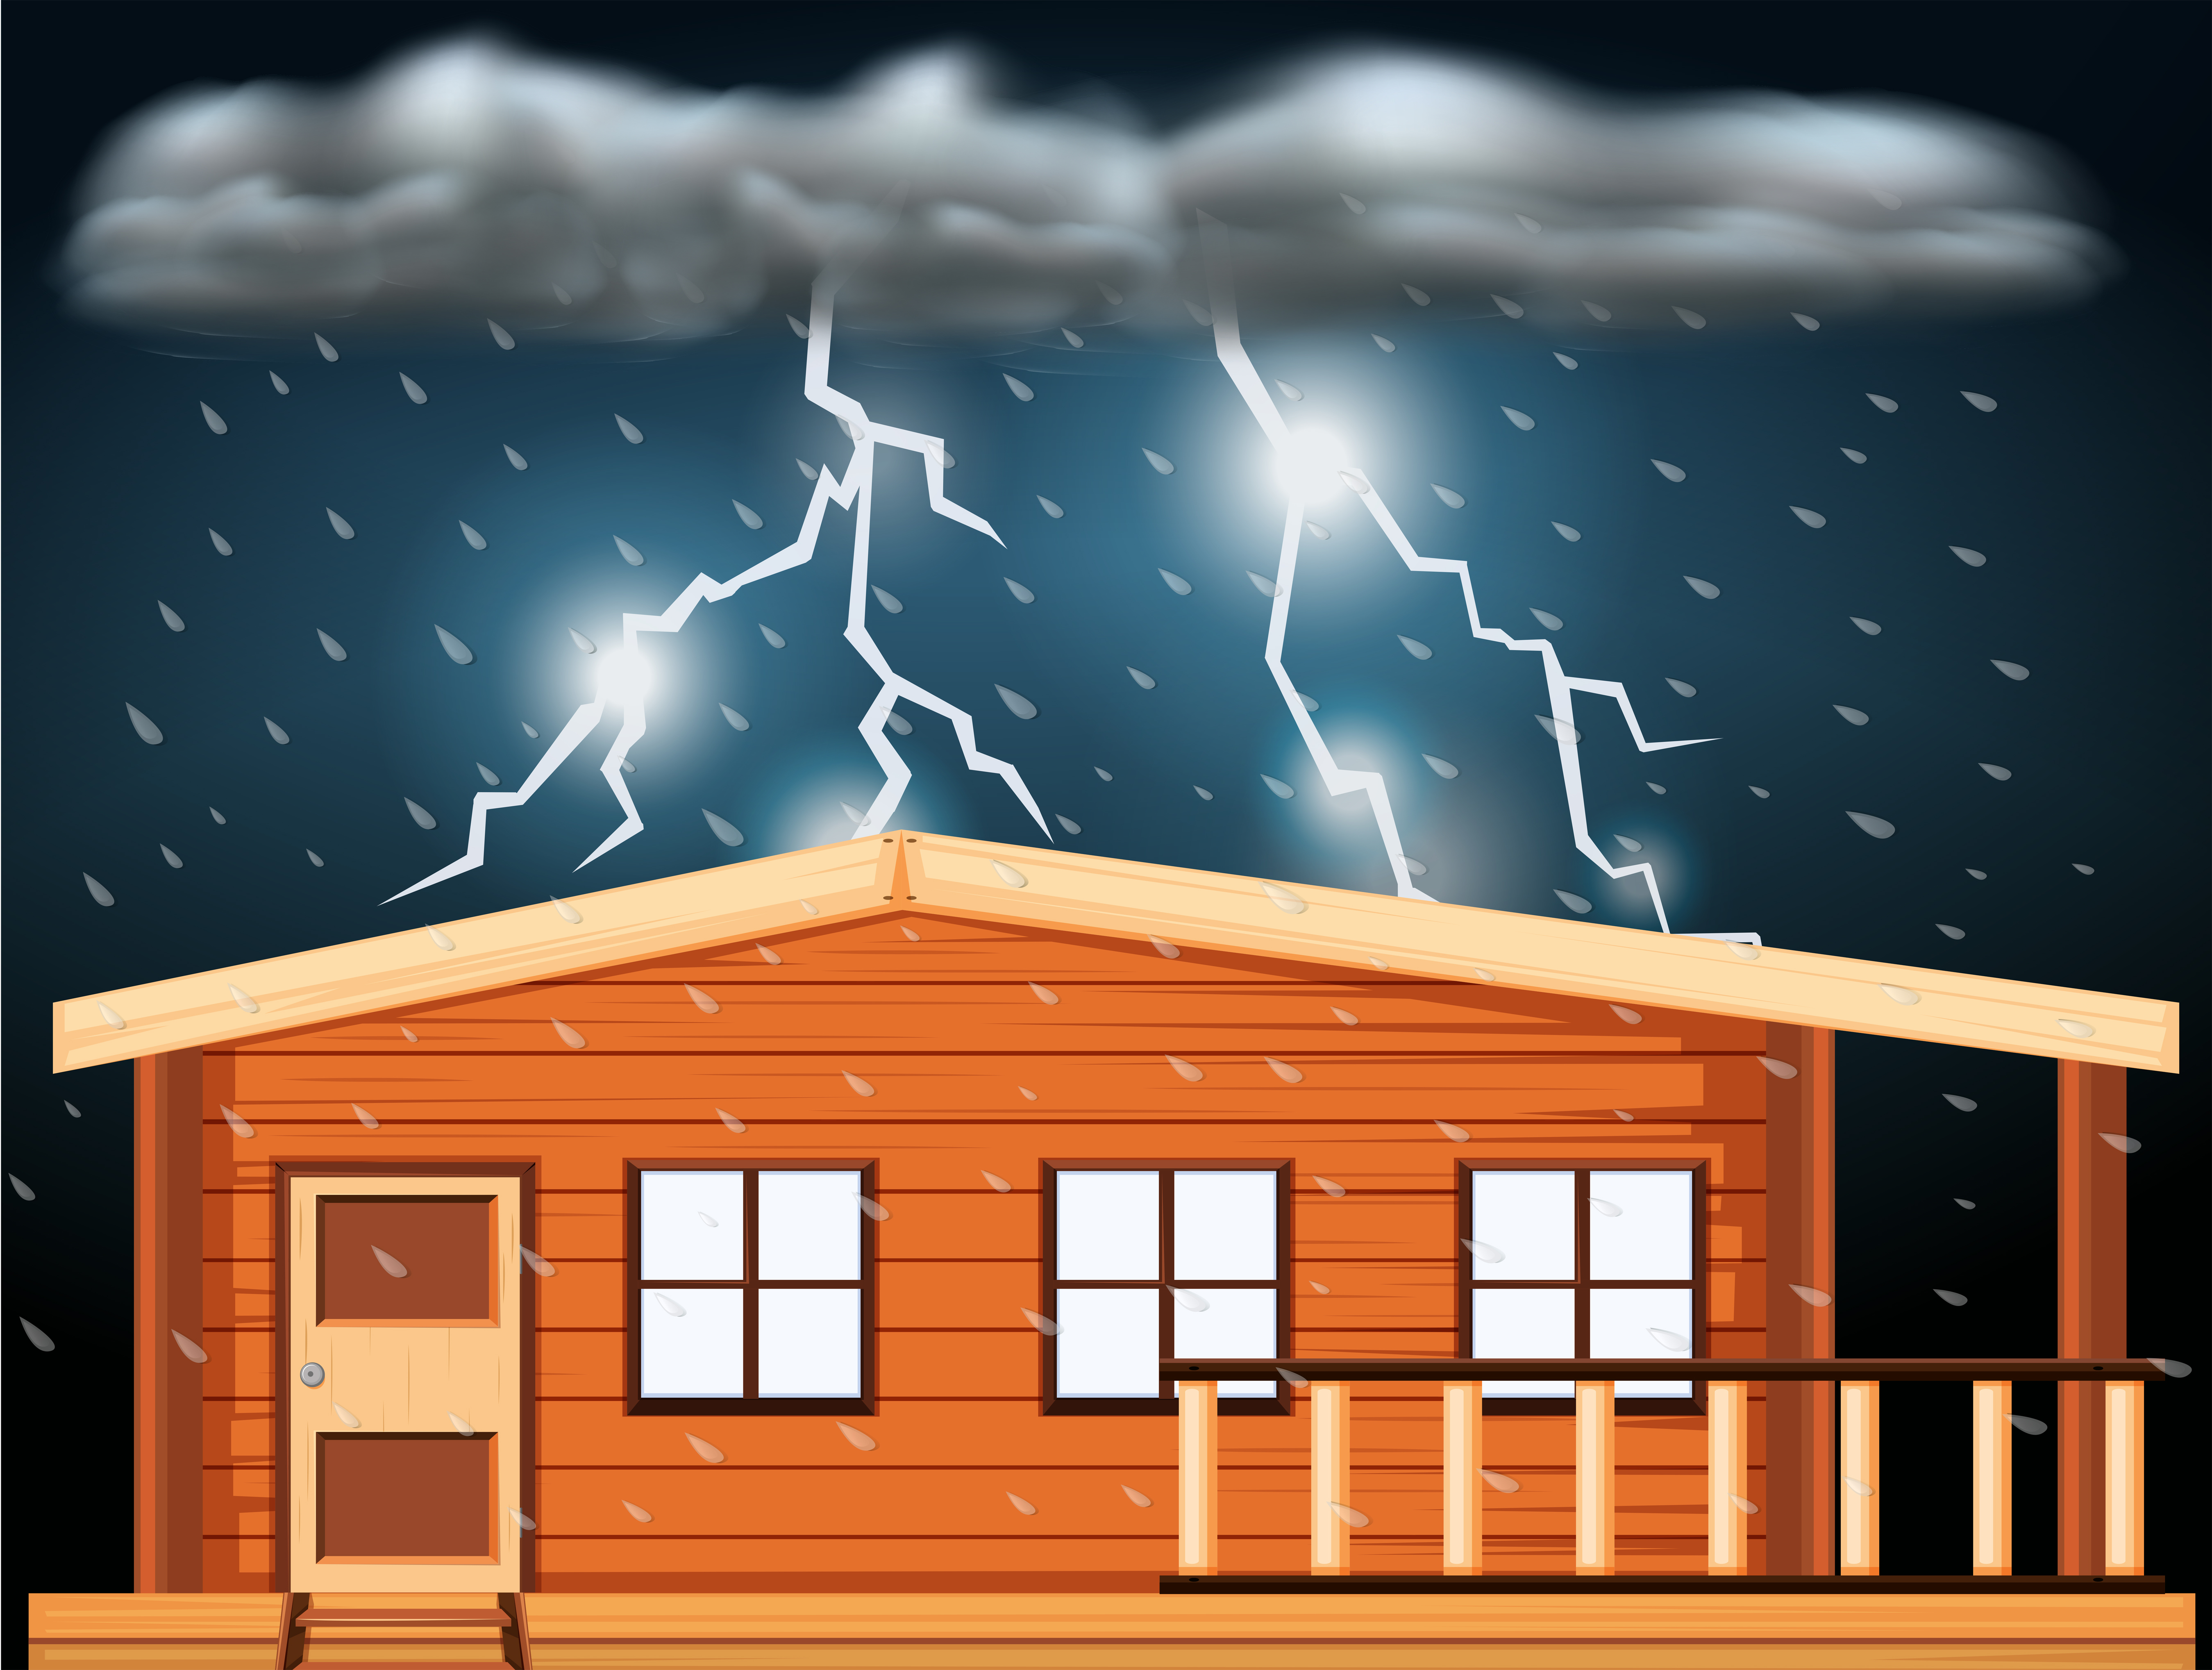 Scene With Thunderstorms Over The House Download Free